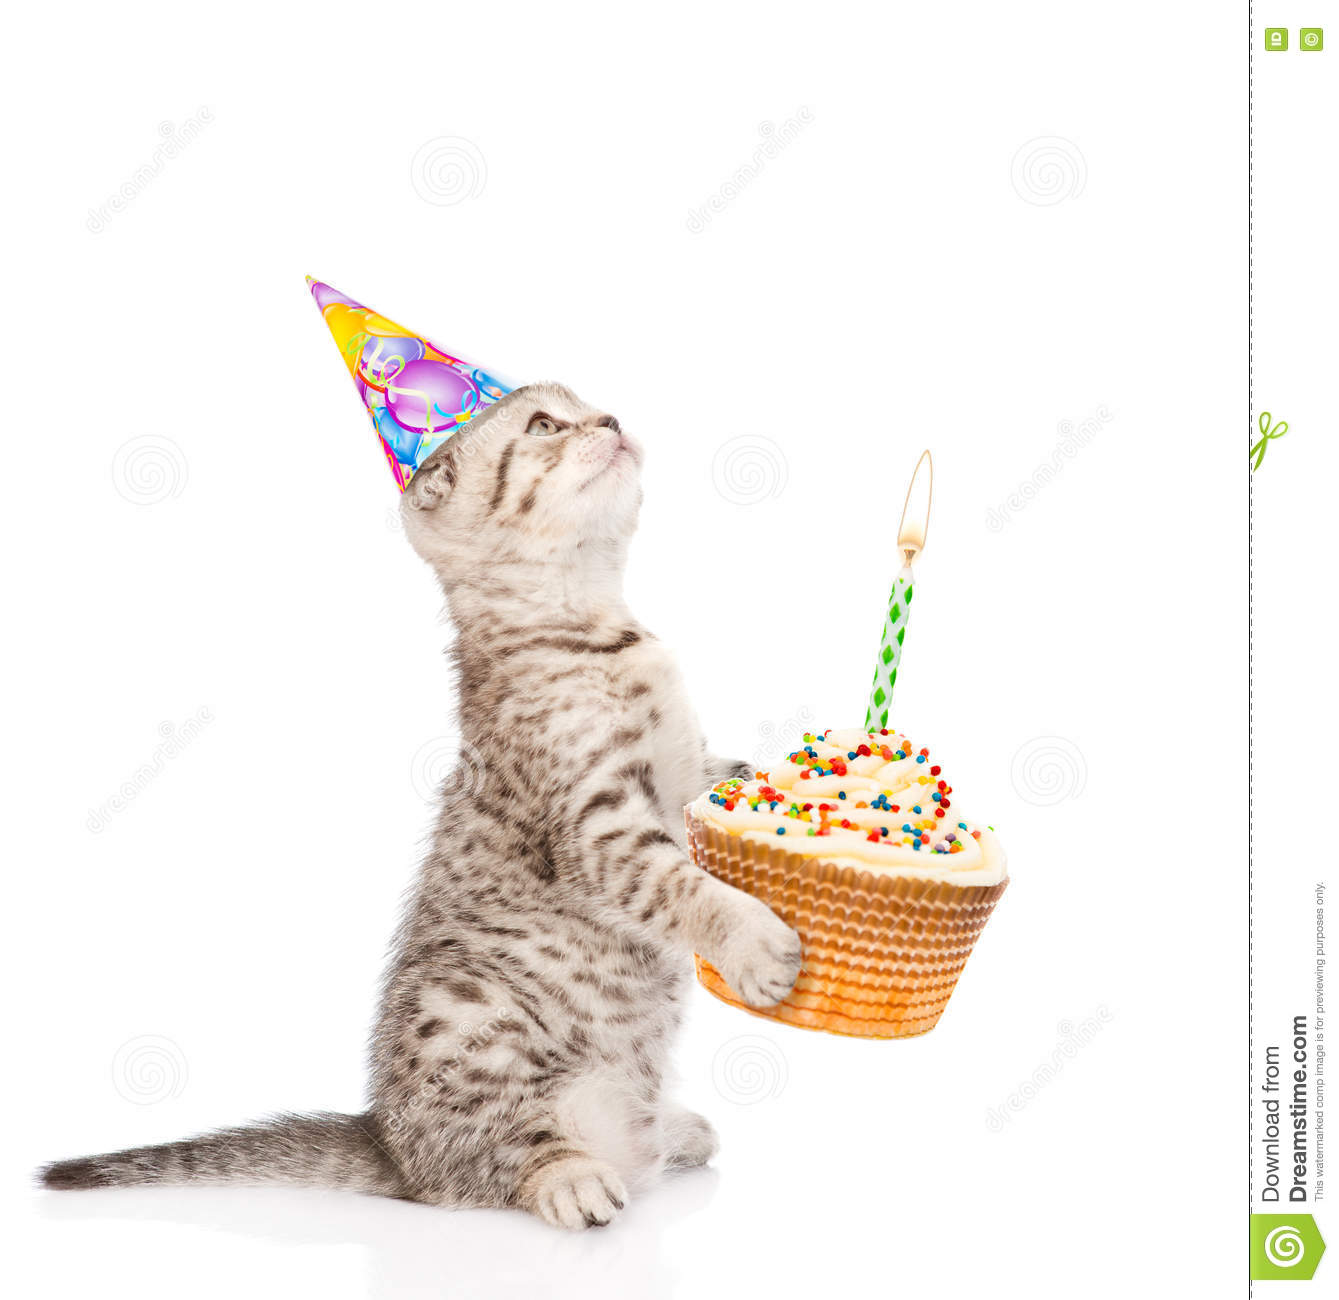 Tabby Cat In Birthday Hat Holding Cake With Candles Isolated On White Background Royalty